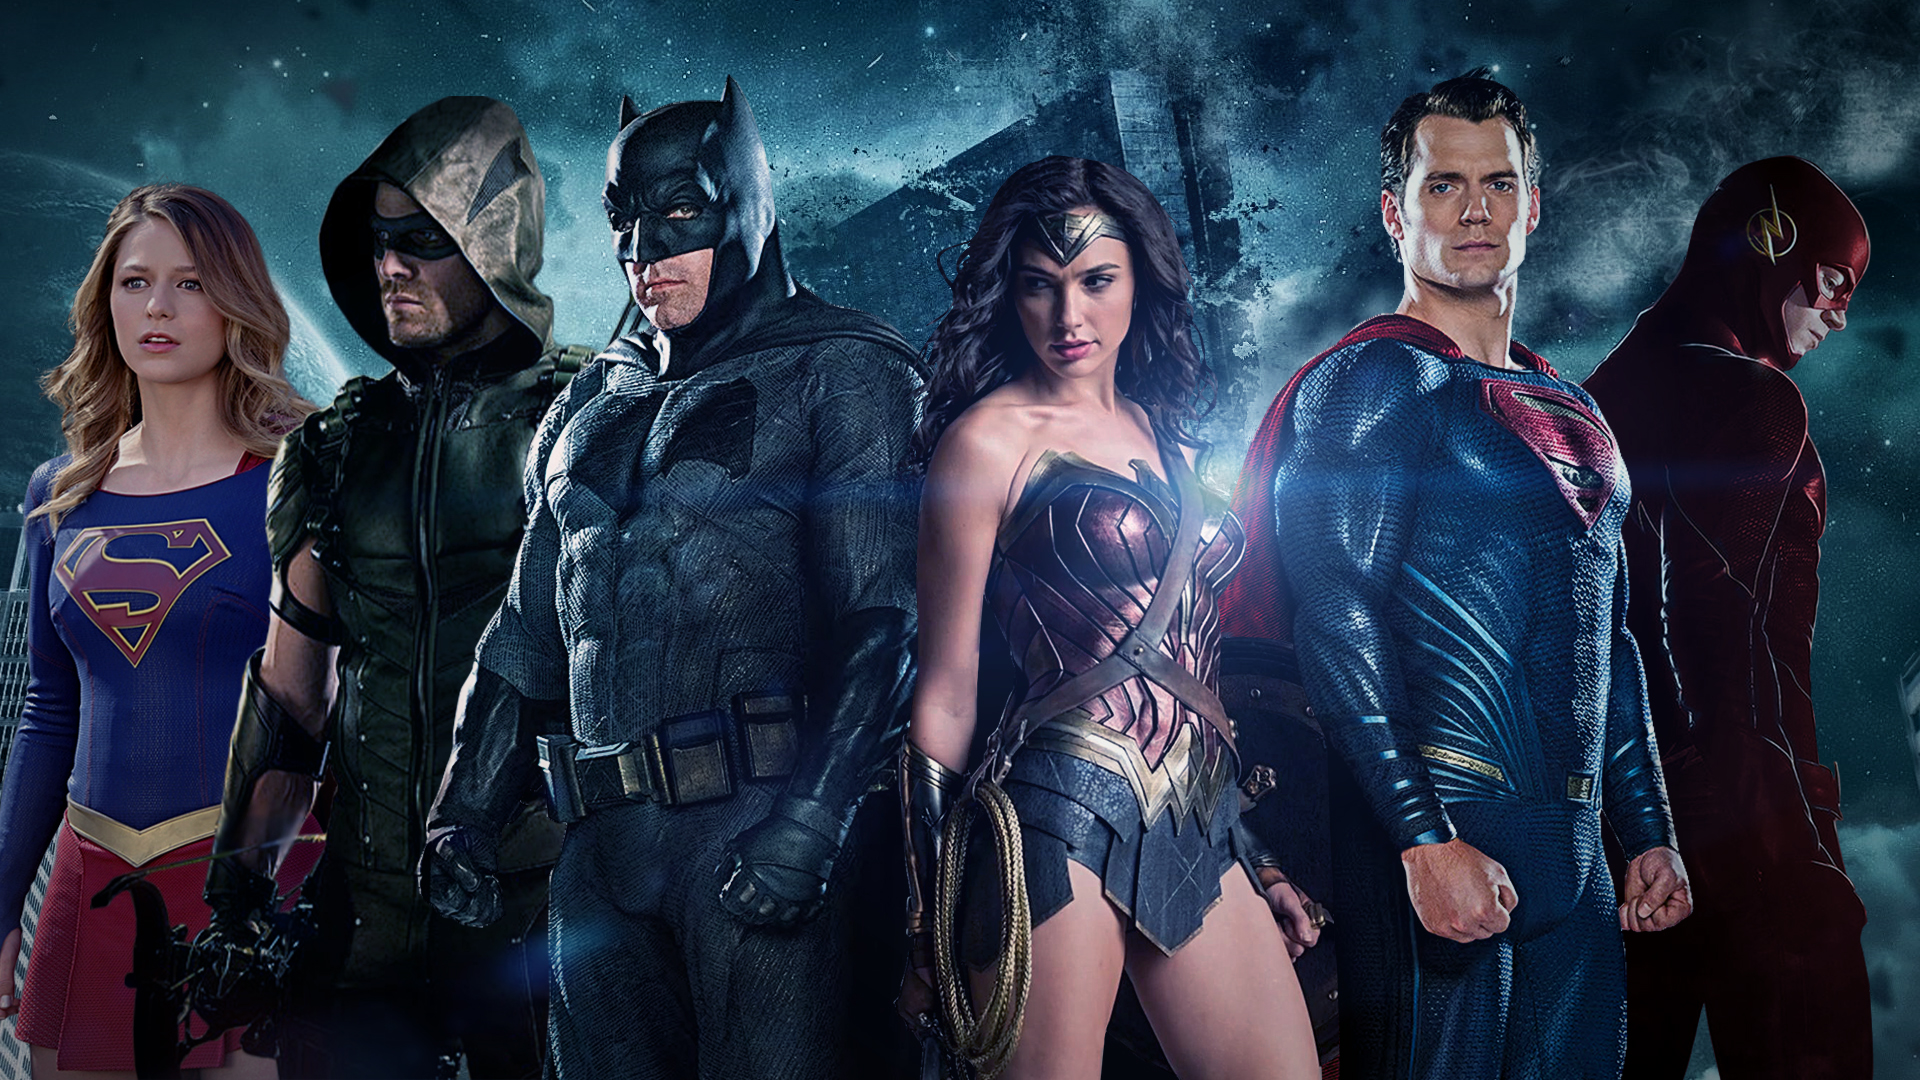 Justice League 2017 Full HD Wallpaper